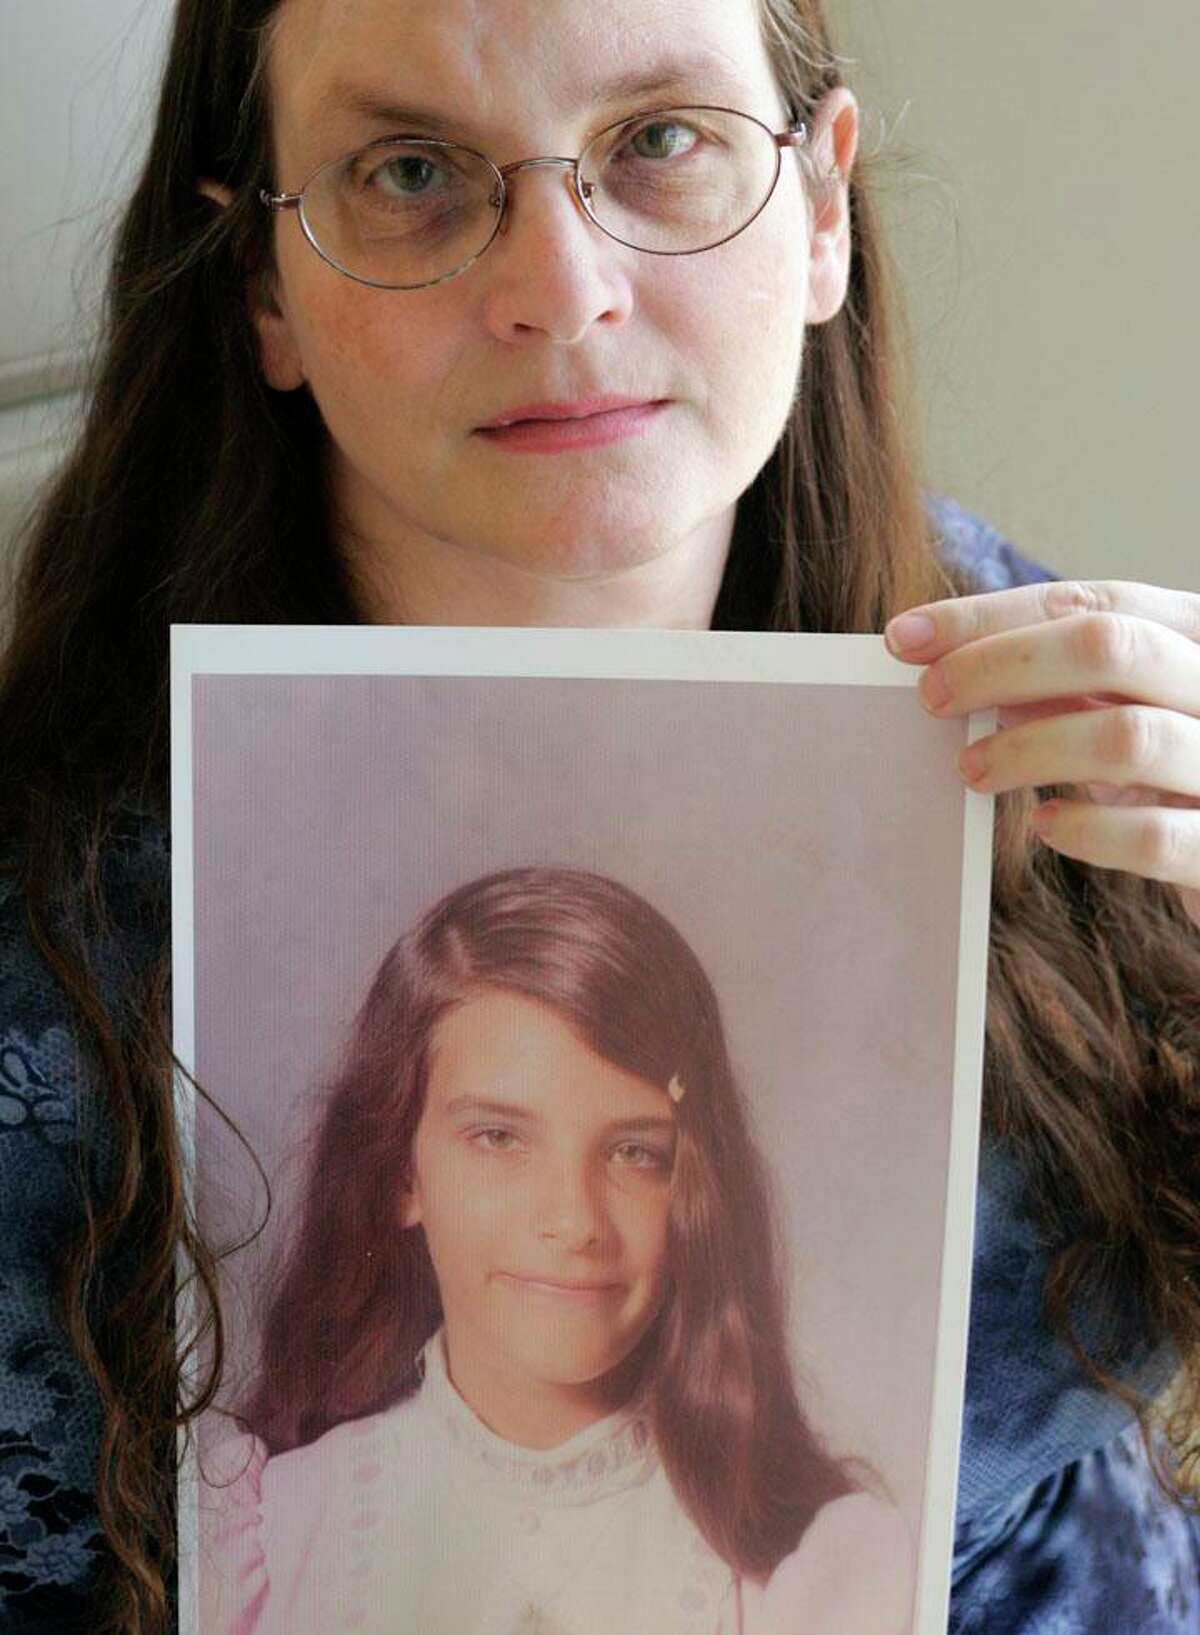 Debbie Vasquez holds a photographer of herself at age 14. Vasquez says she was raped by a Southern Baptist pastor as a teenager. (AP Photo/Donna McWilliam)